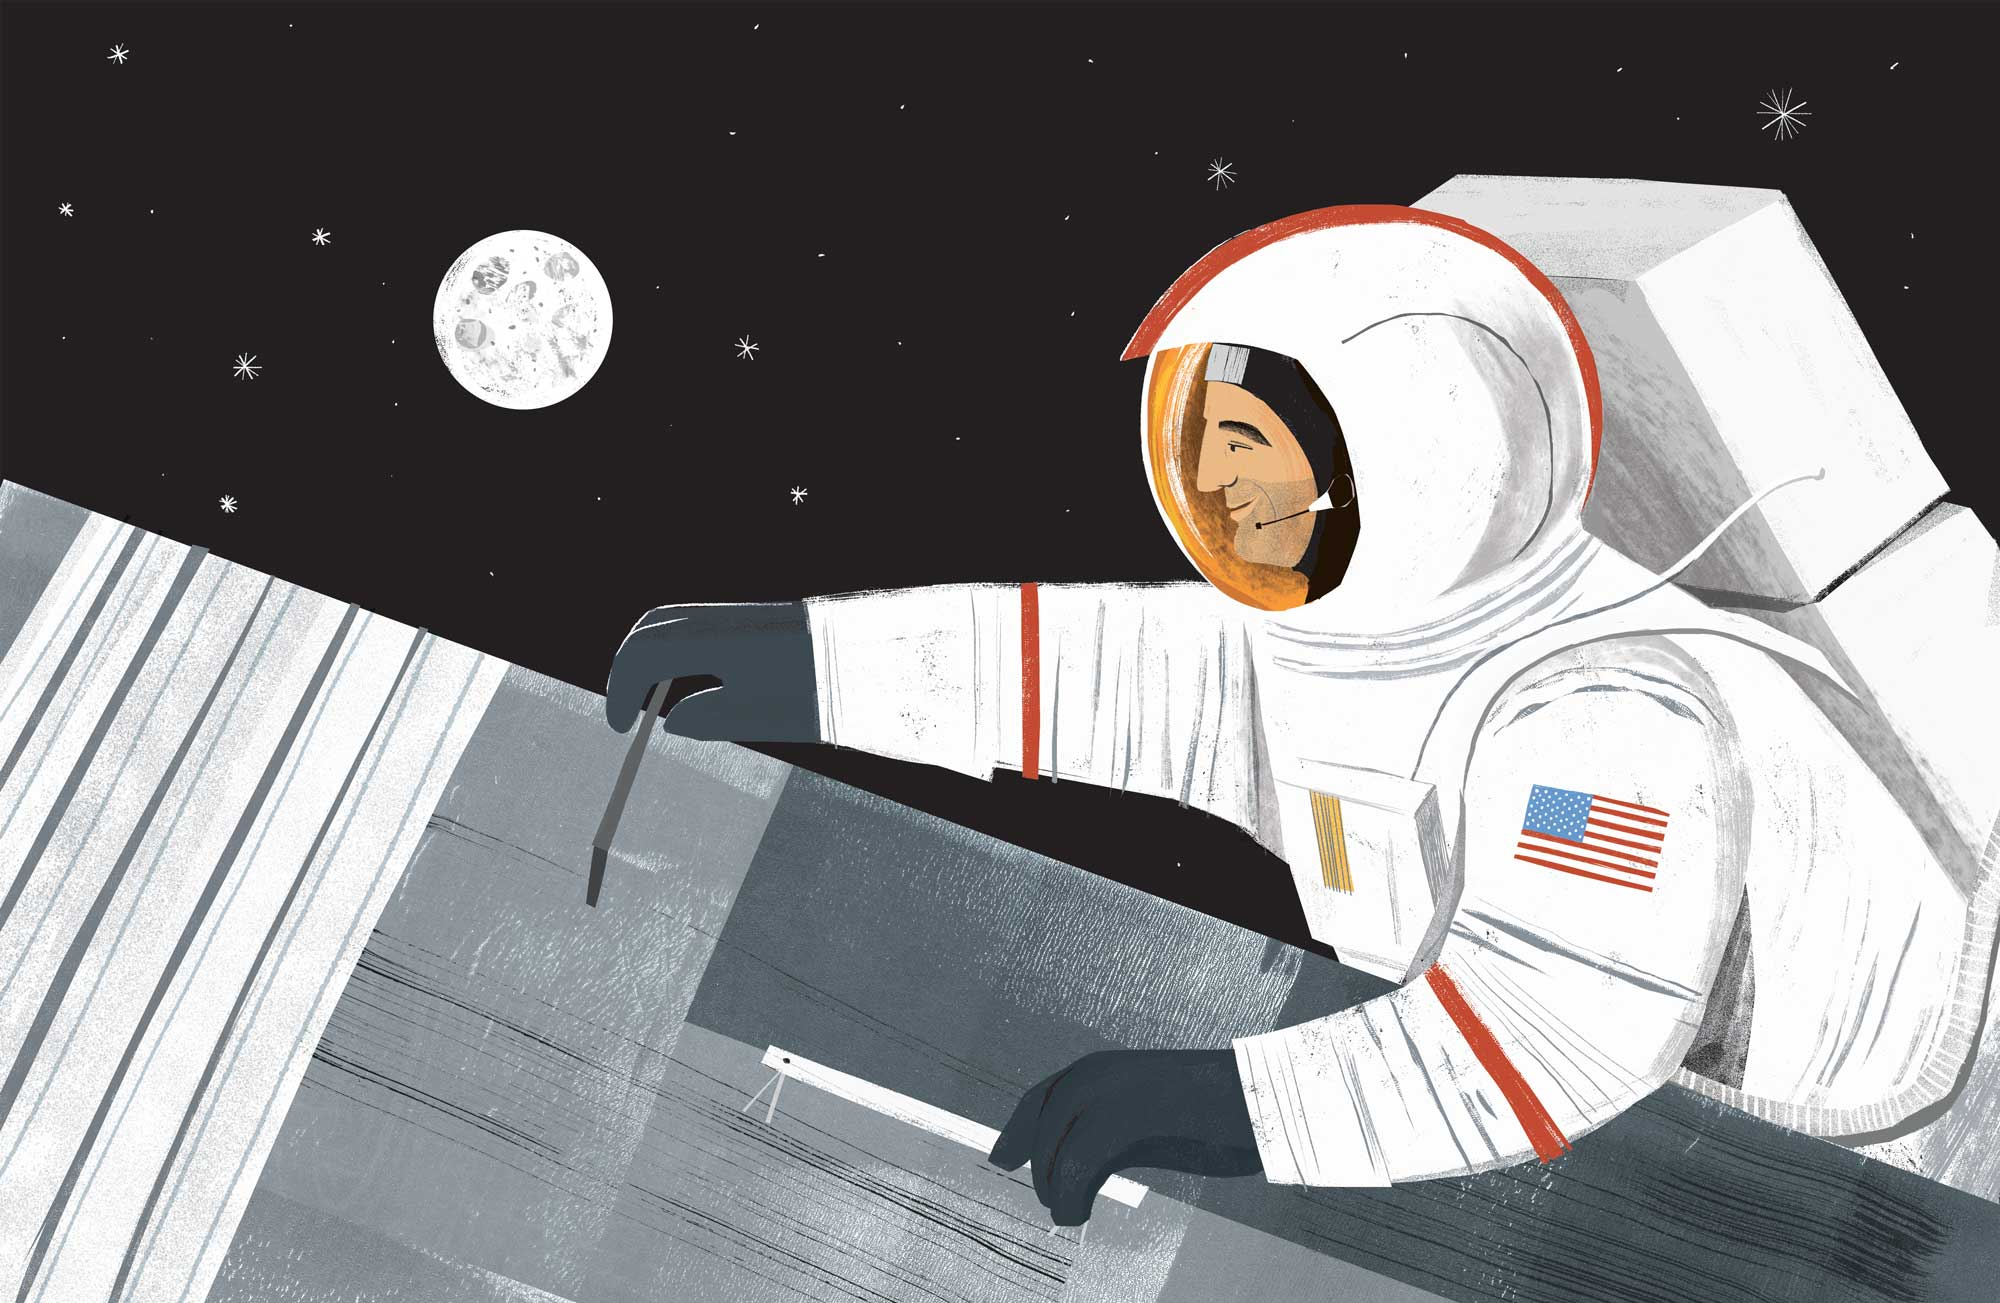 kalda_moon_illo_47_final_web.jpg